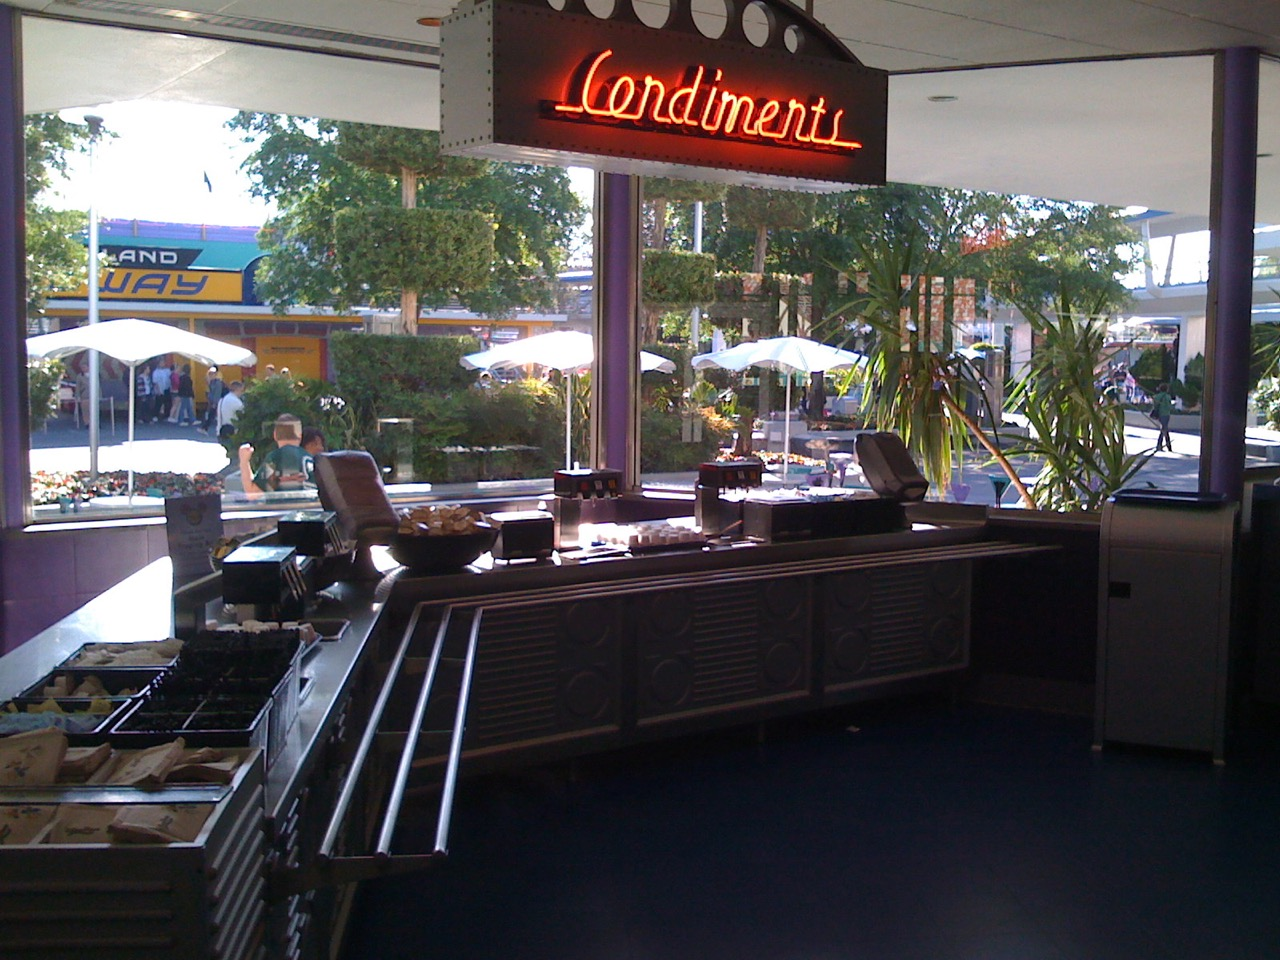 Condiment area is separated out with two-sided queues. Photo by J. Jeff Kober.